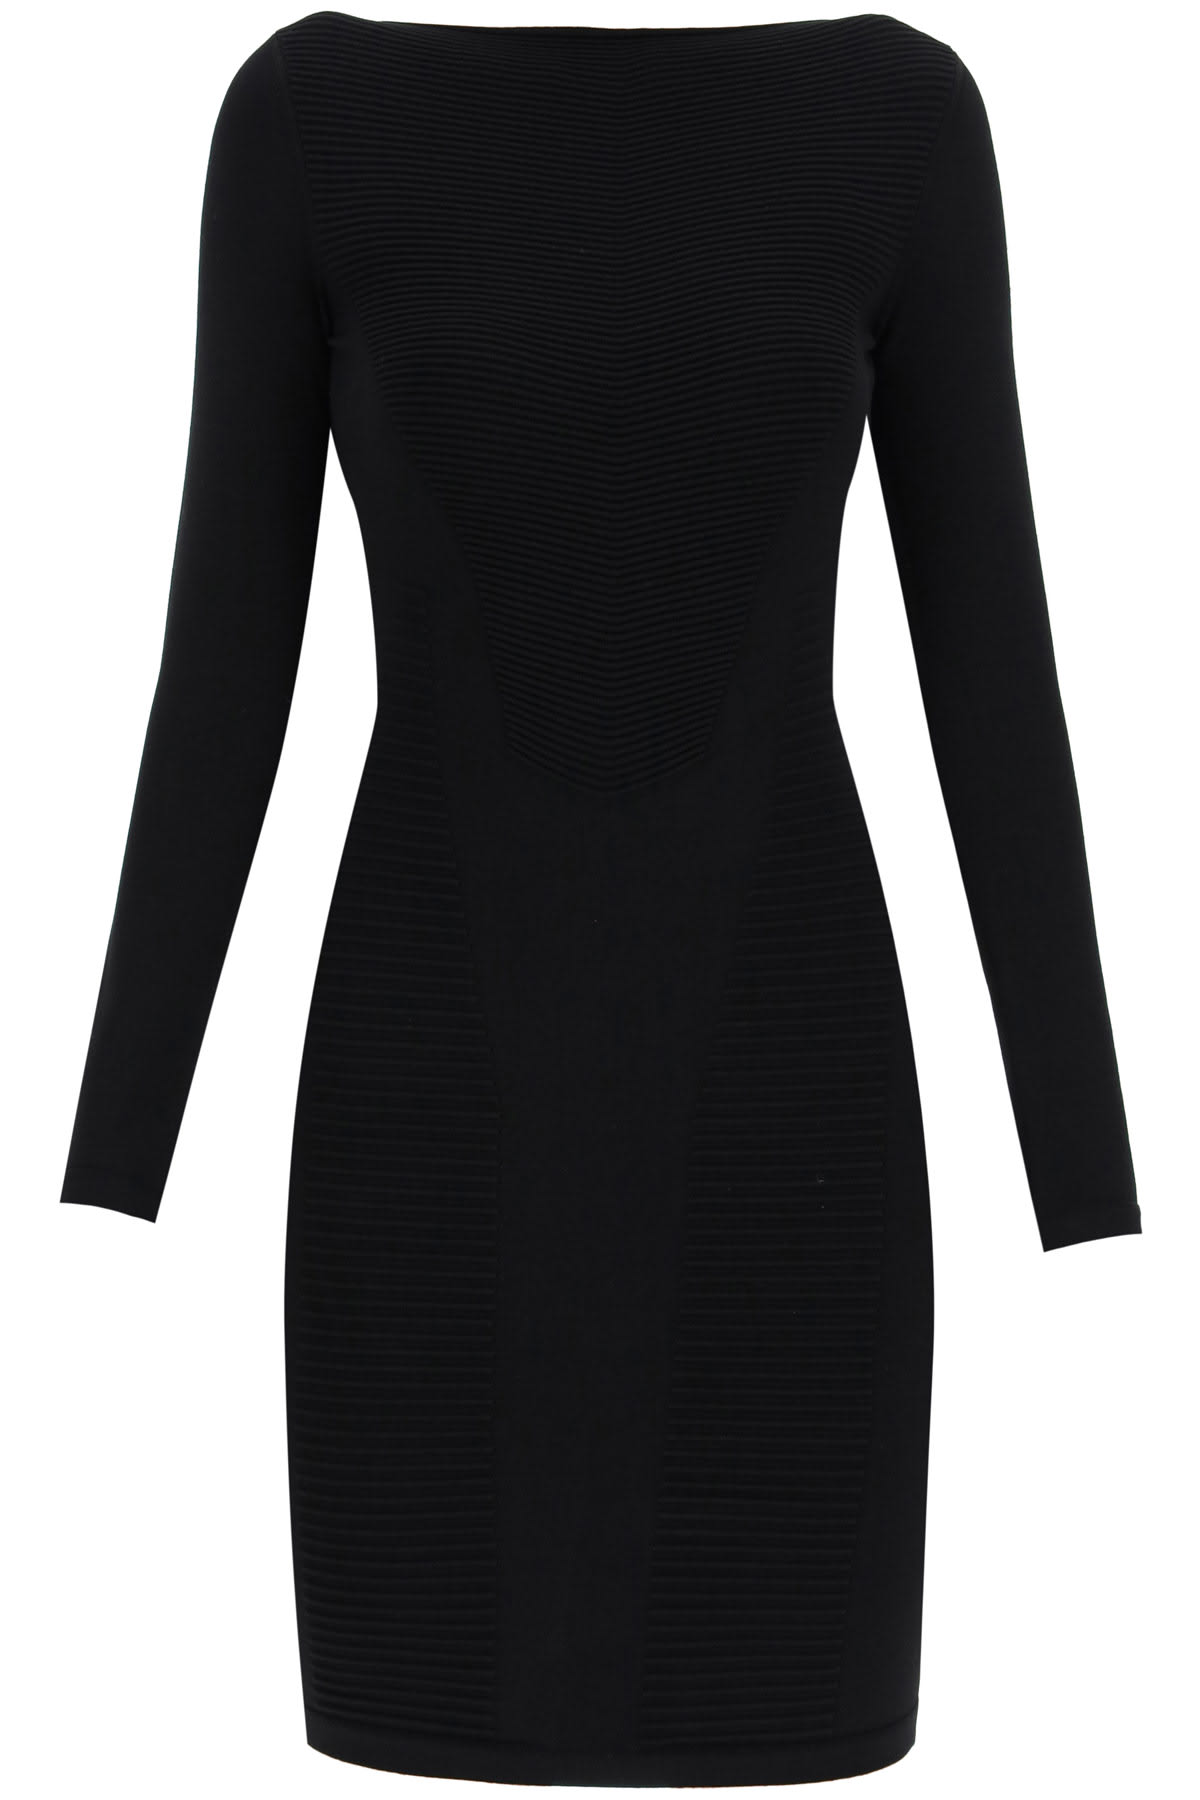 Buy Dsquared2 Ribbed Knit Sheath Mini Dress online, shop Dsquared2 with free shipping